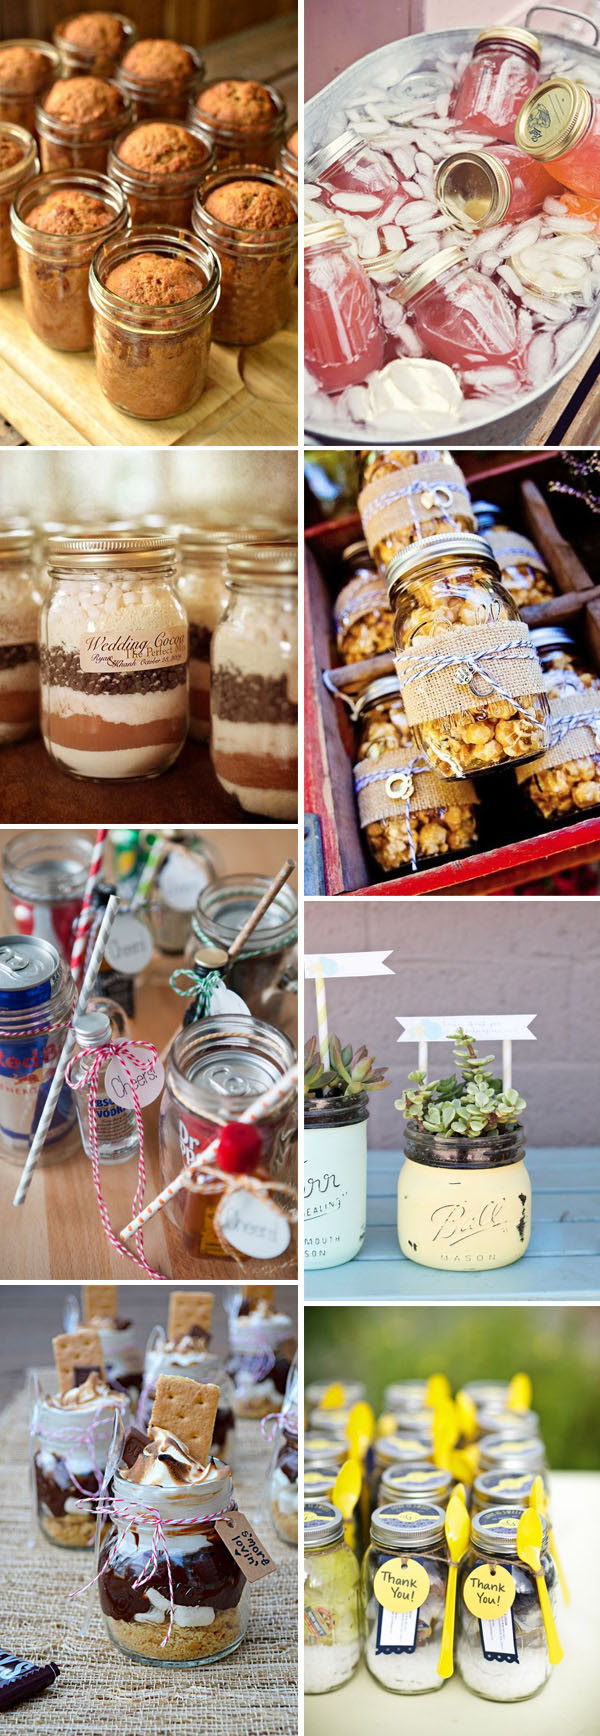 50 Best Rustic Wedding Ideas With Mason Jars Stylish Wedd Blog